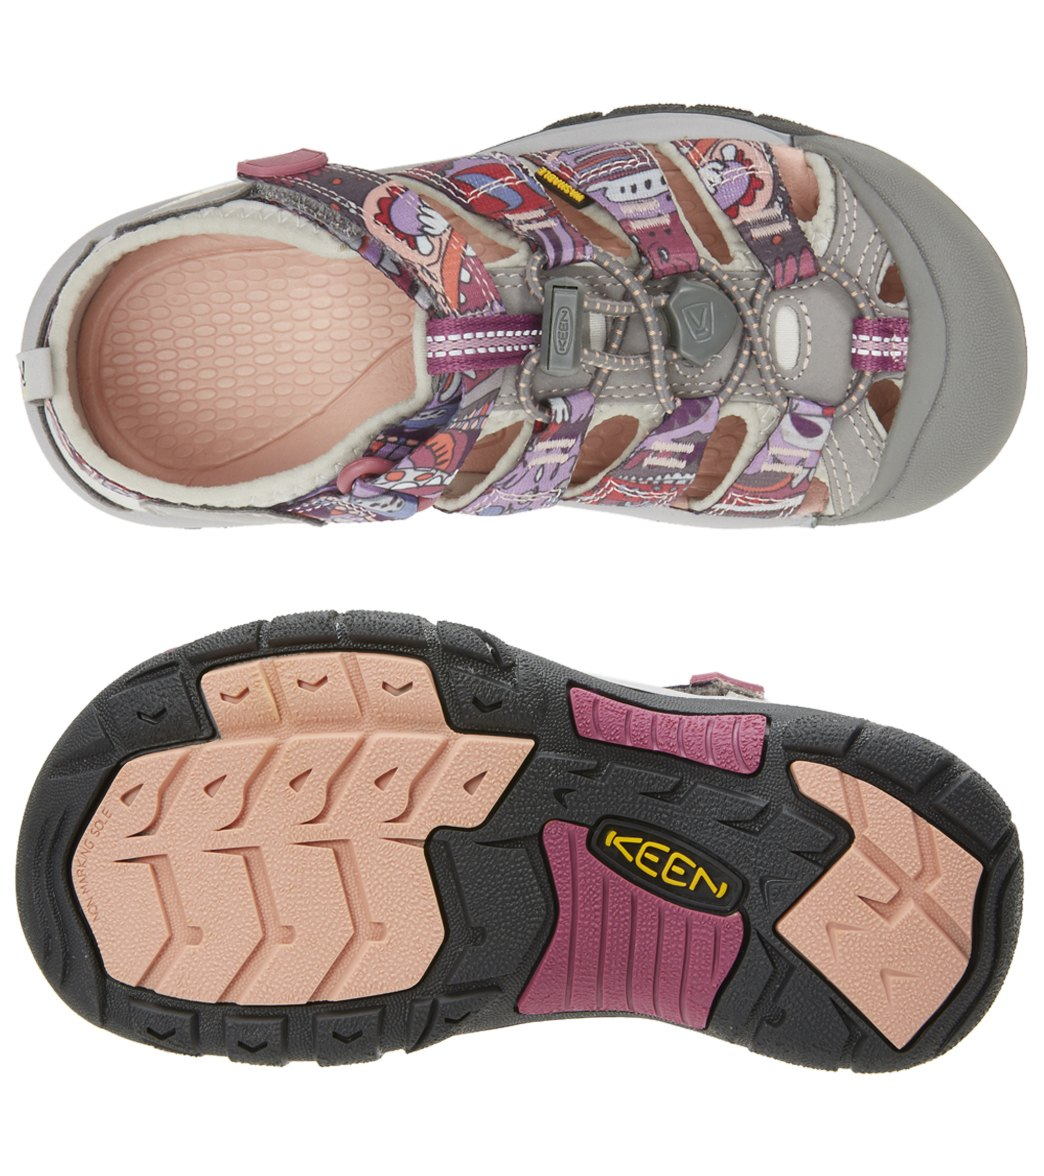 c6f093bdd8f16 Keen Youth s Newport H2 Water Shoes at SwimOutlet.com - Free Shipping